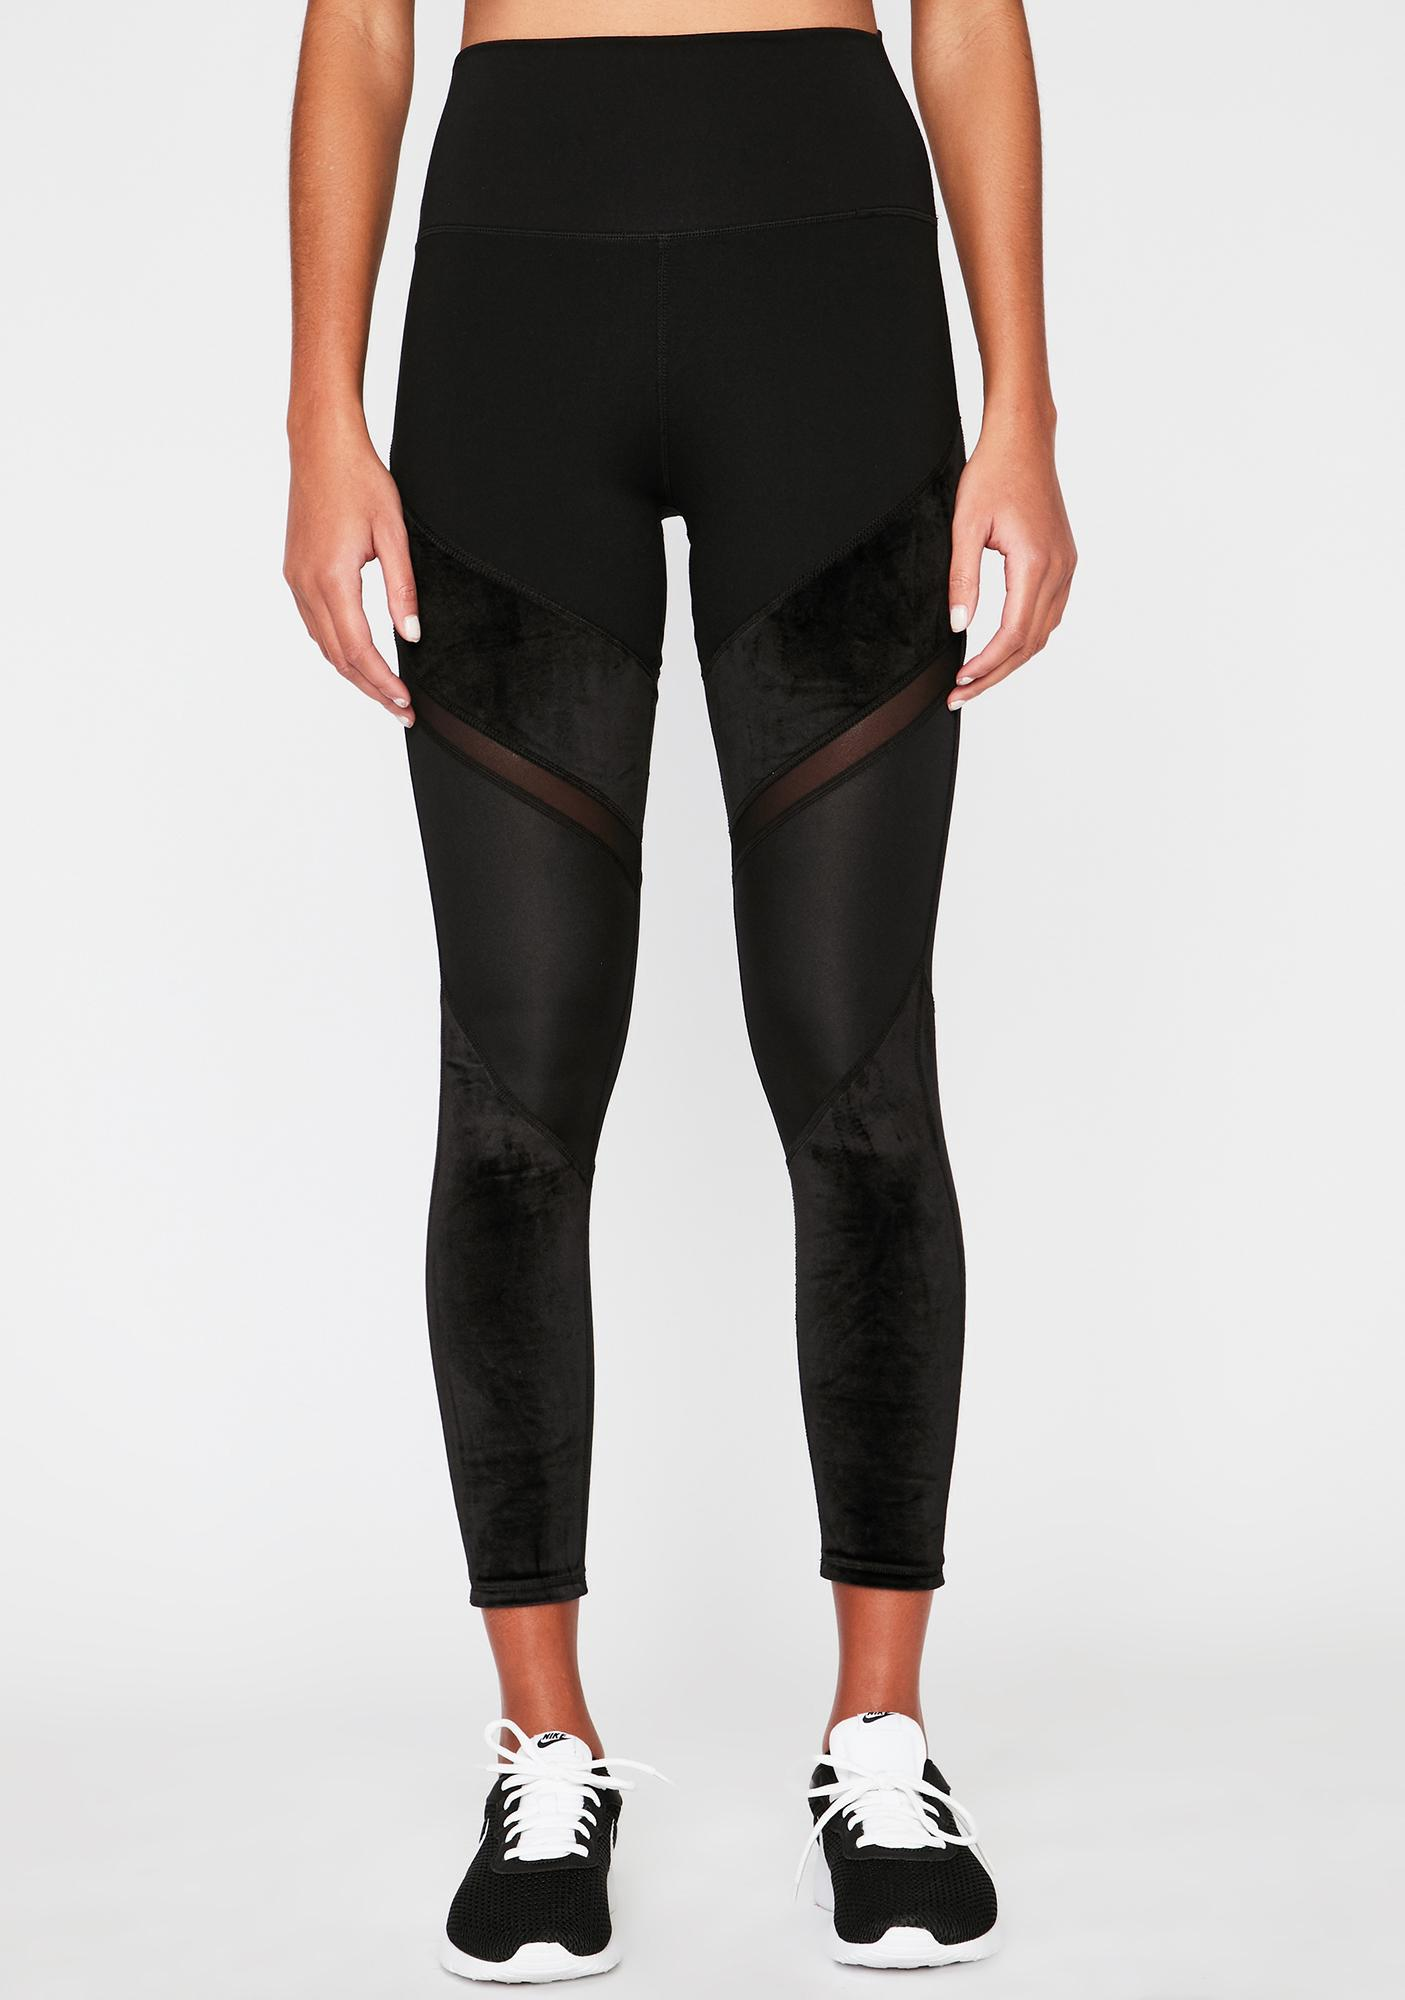 Pump It Up Sports Leggings